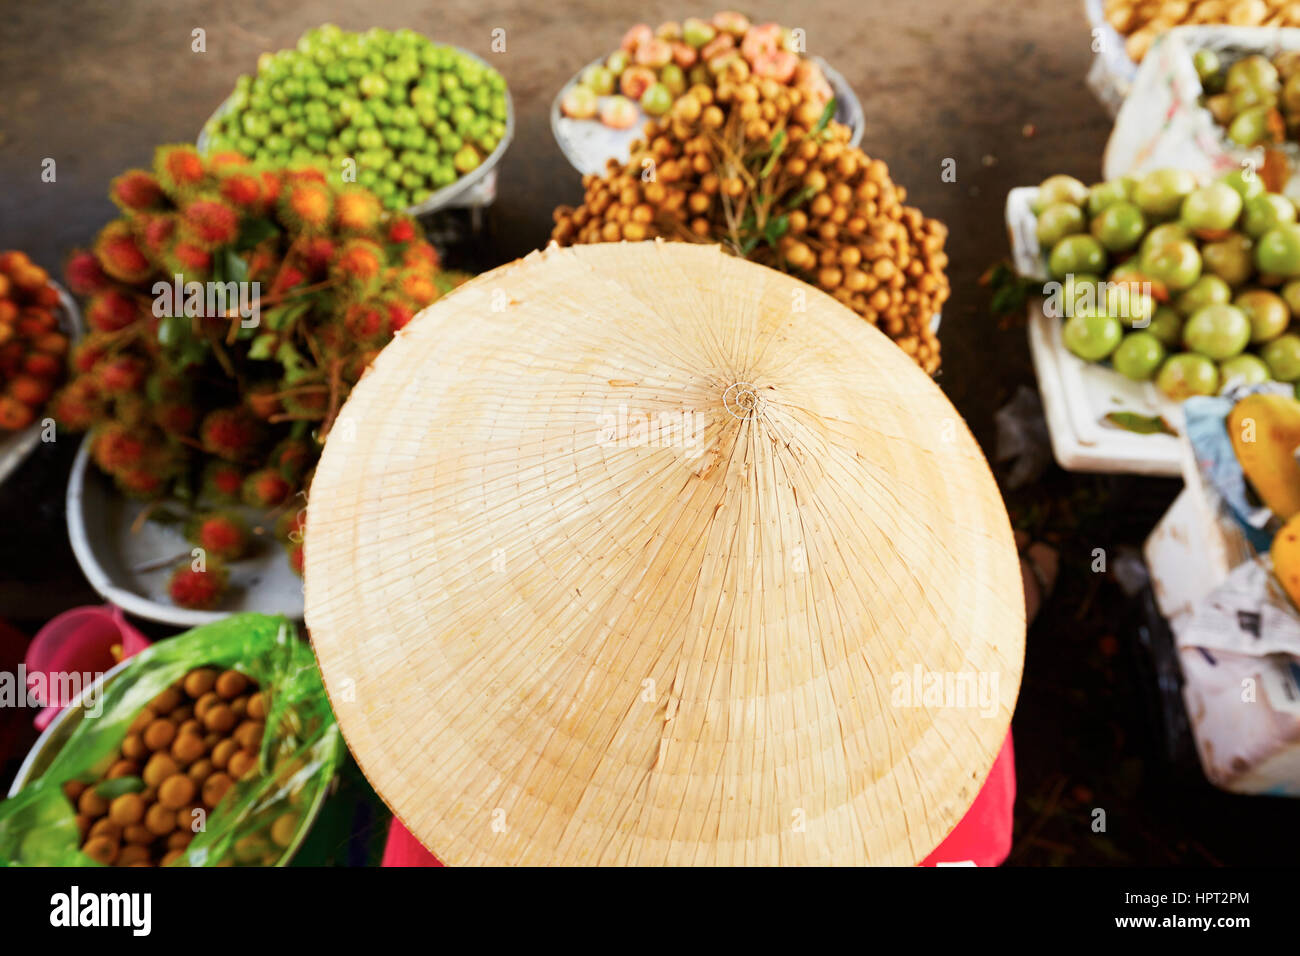 Vietnamese woman selling fruits on the street market - selective focus - Stock Image